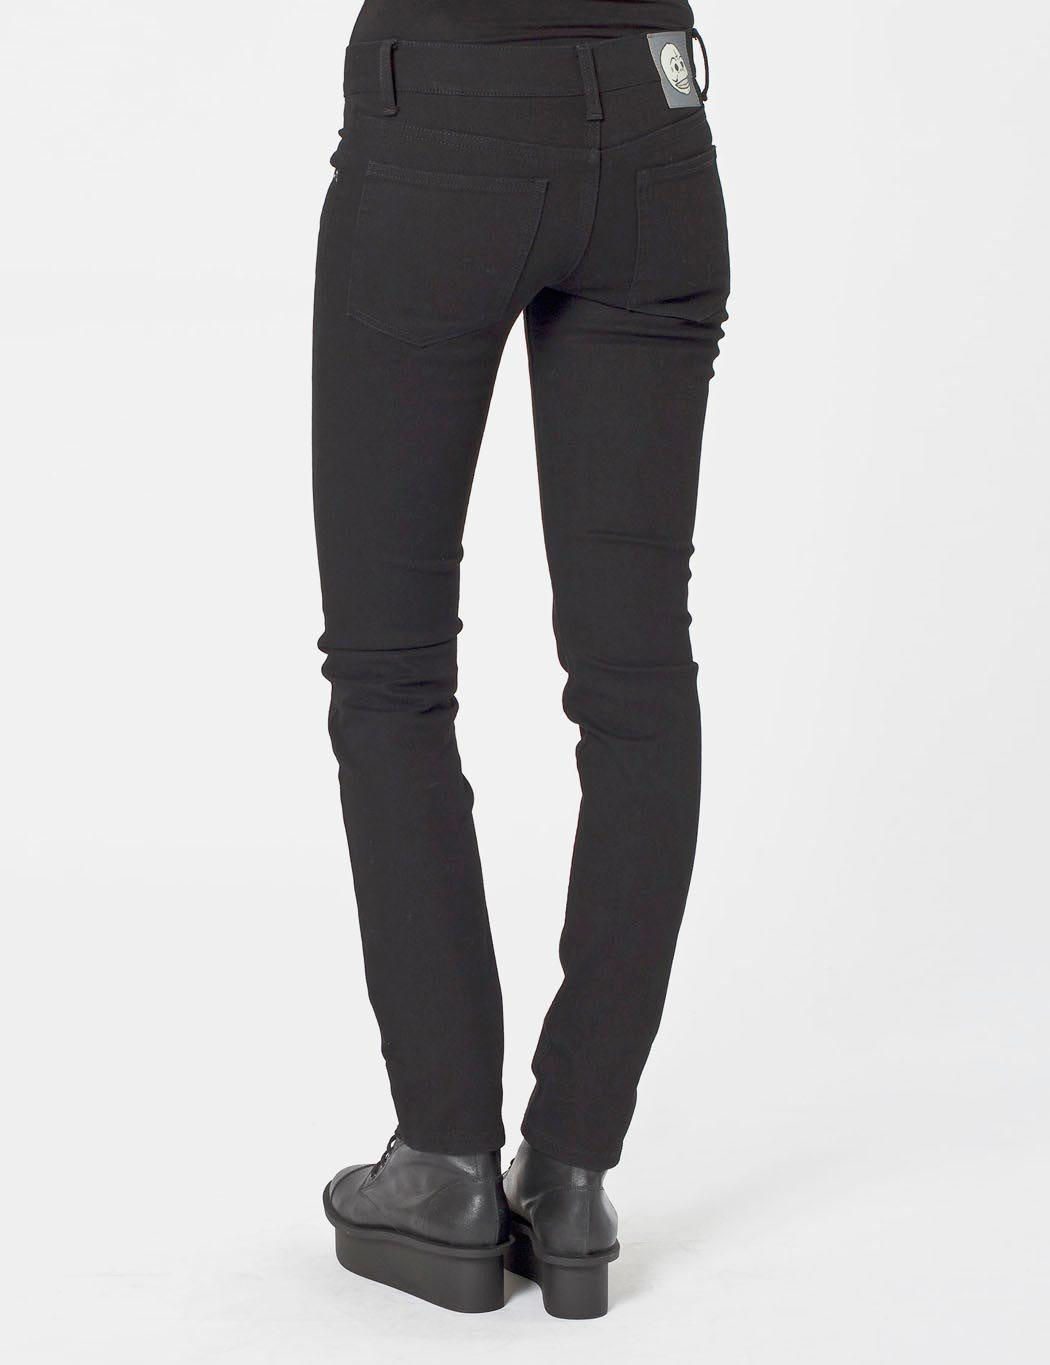 Cheap Skinny Jeans for Women Sexy Skinny Jeans in White, Black, Blue, Red & More Colored Styles For women's skinny jeans that are perfect for an array of occasions, discover the pretty and designer inspired denim at JustFab.